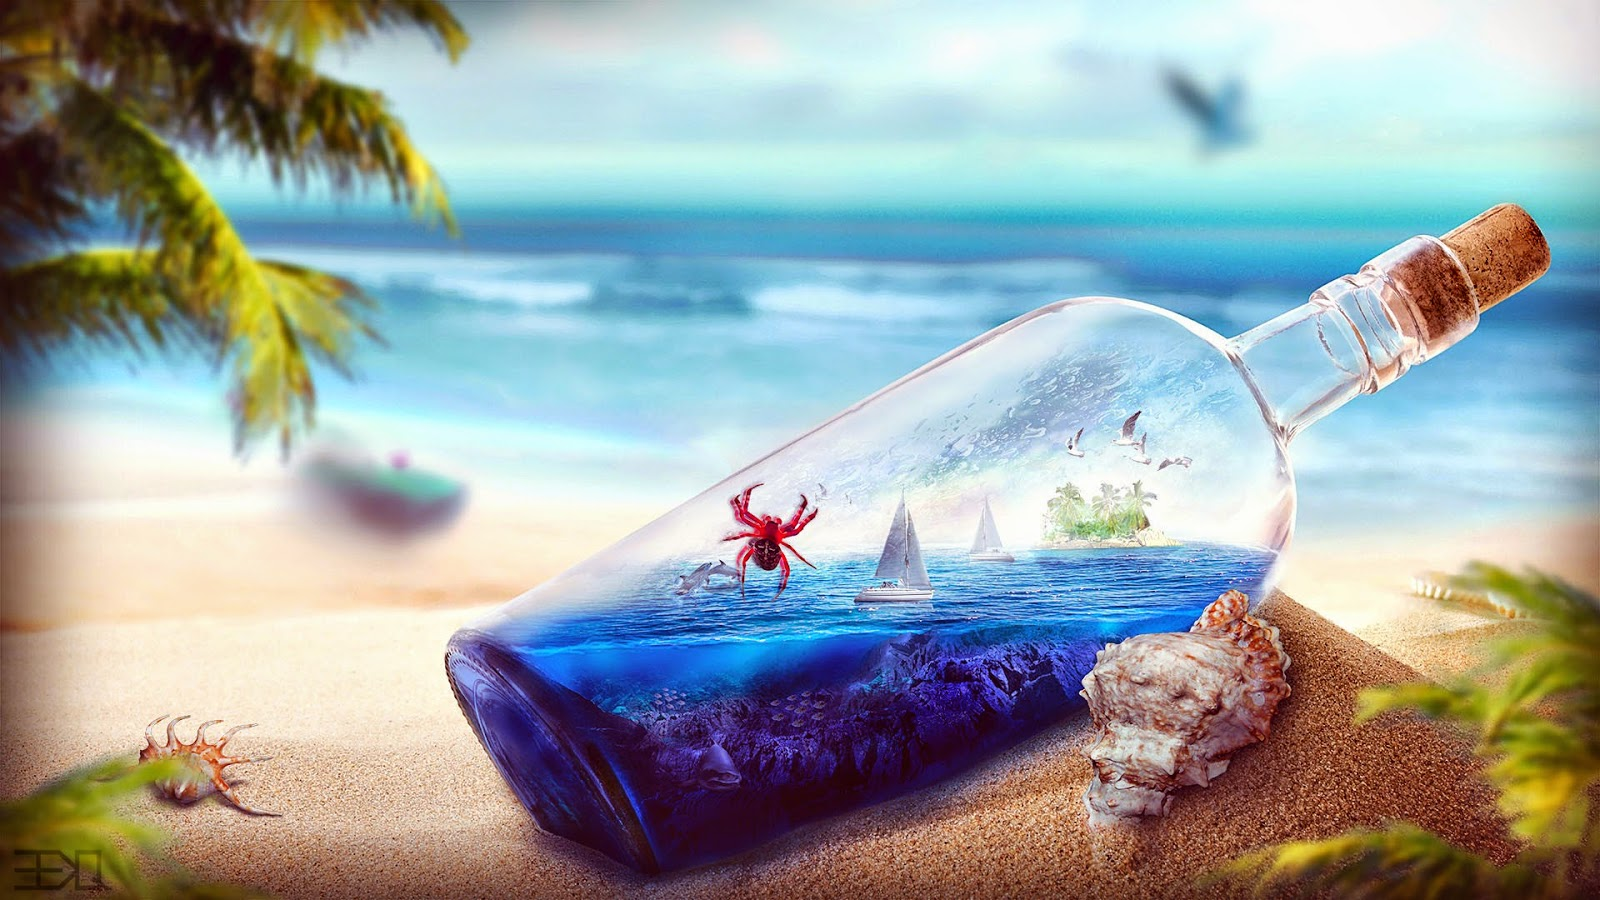 Hd Creative Wallpapers  Hd Wallpapers  High Quality